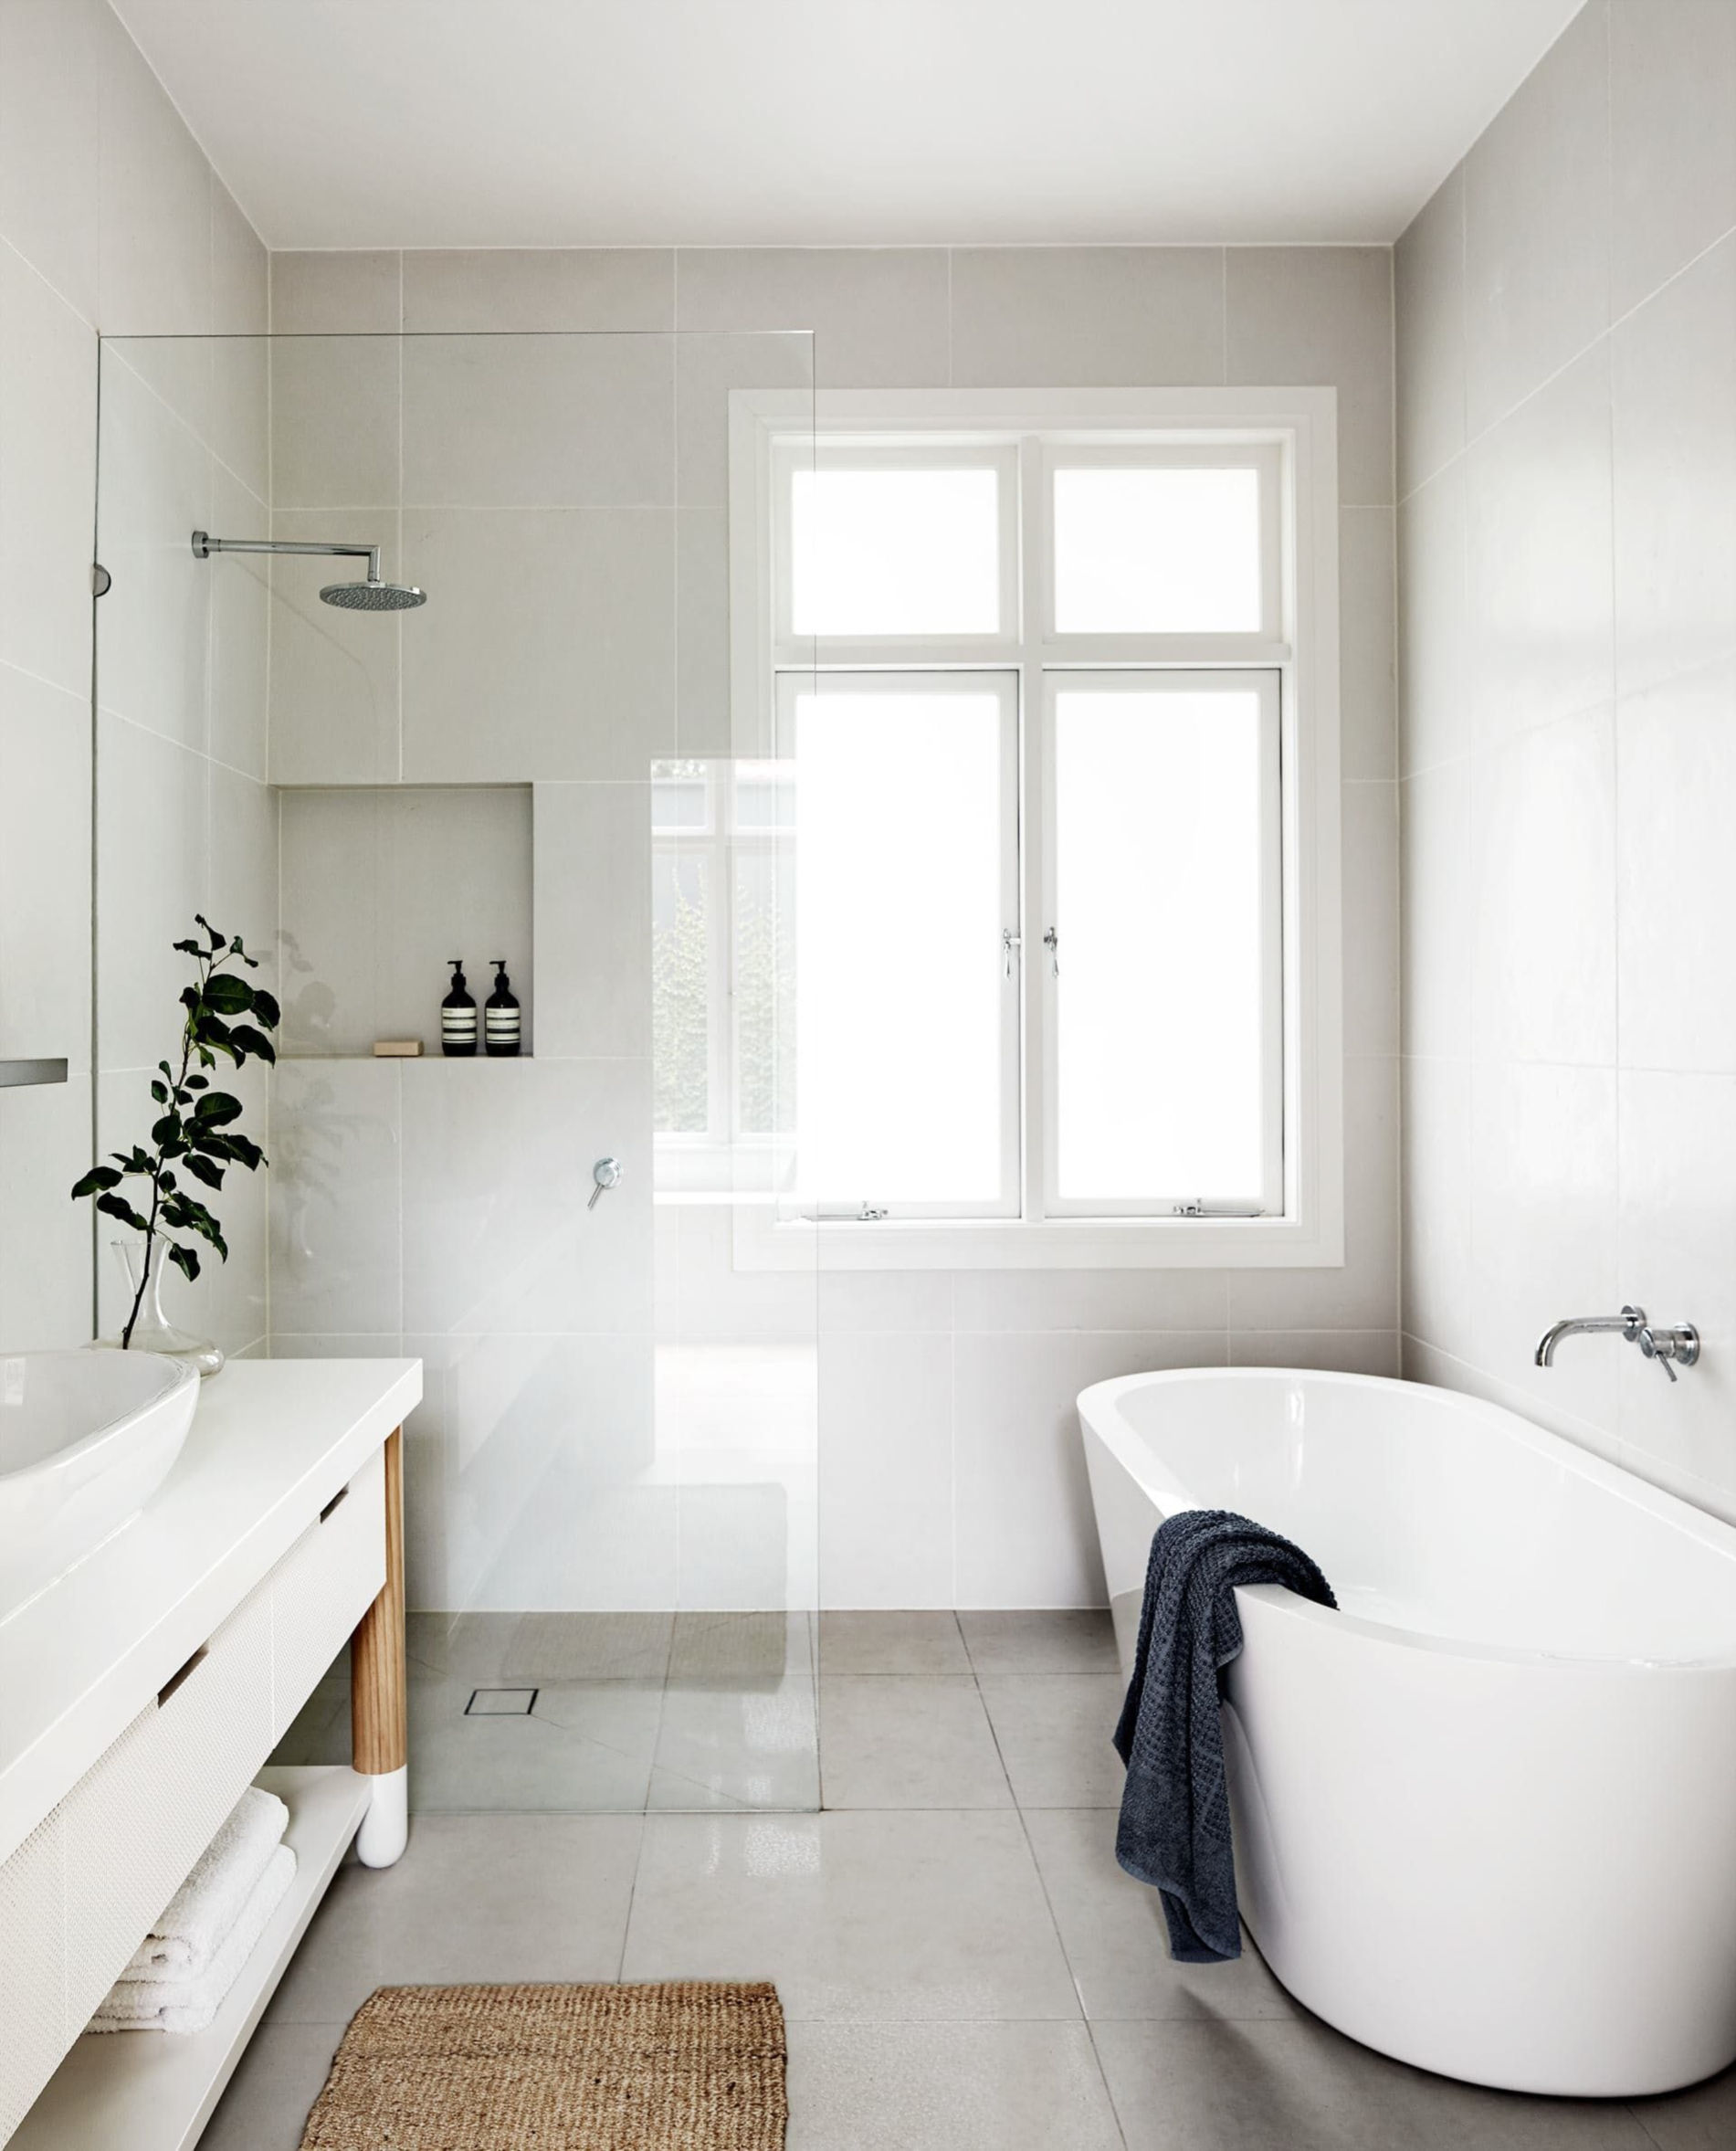 31 Small Bathroom remodel Ideas by Jekyll and hyde Simphome